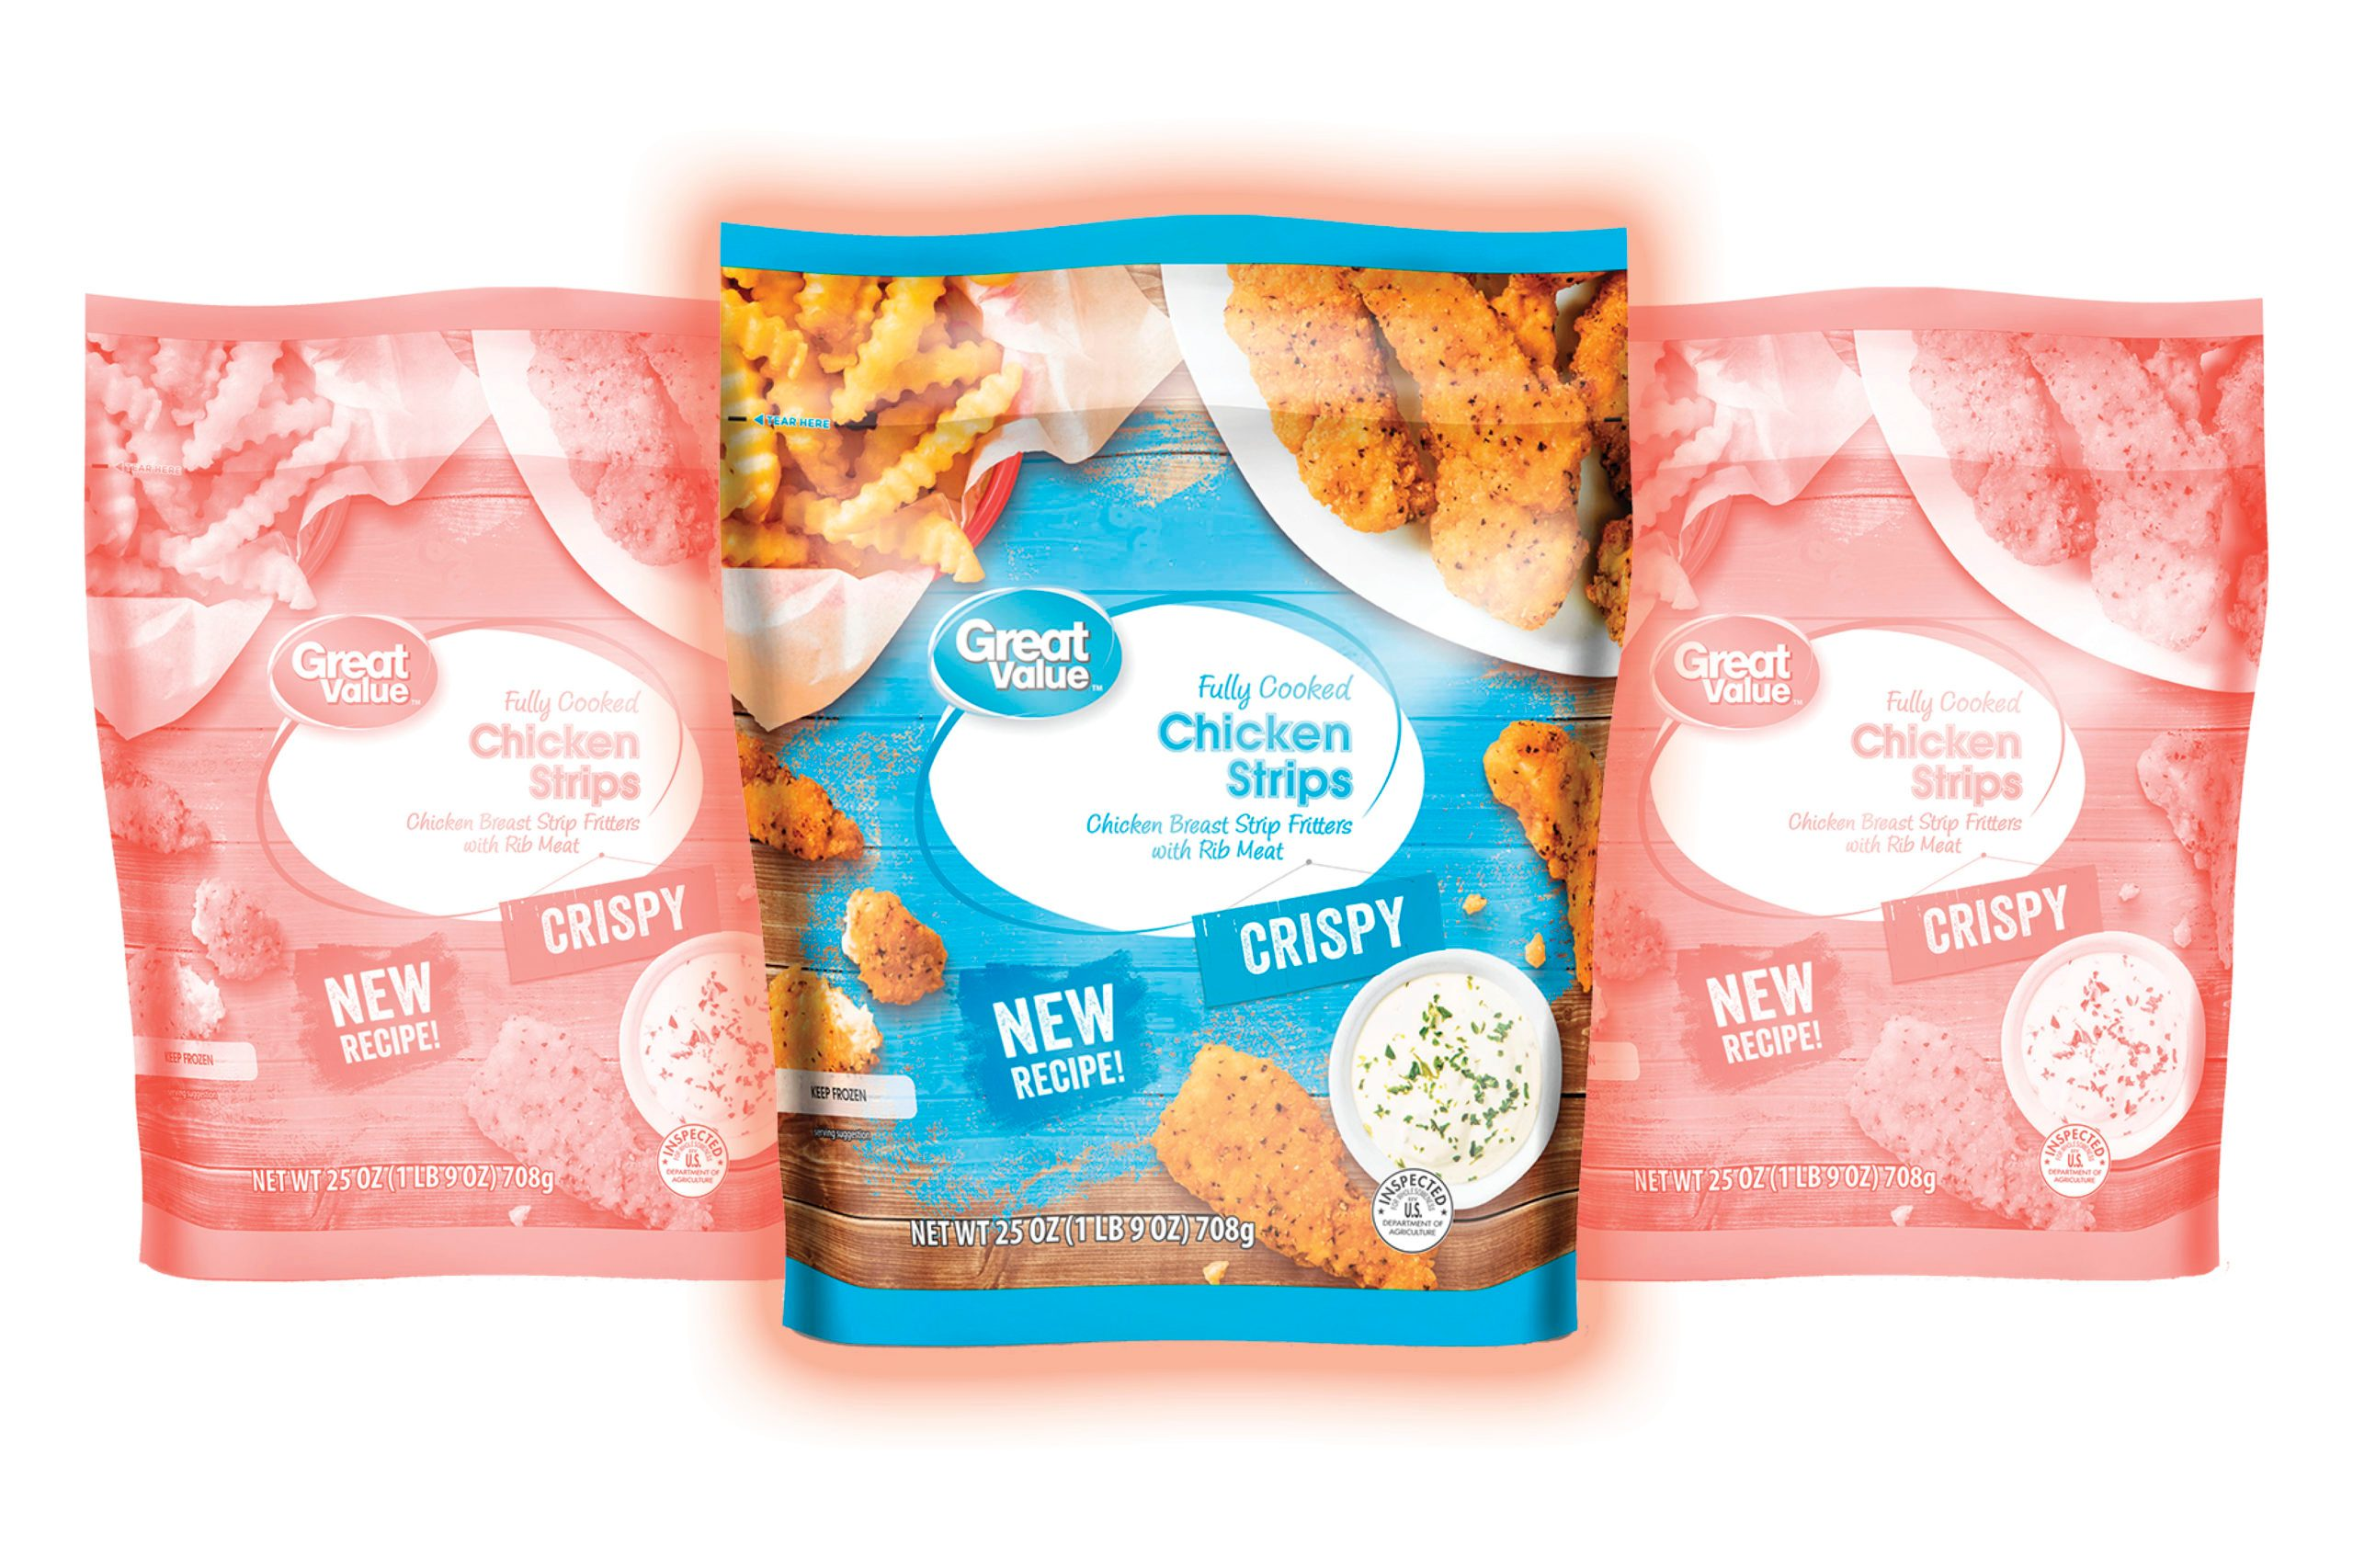 Great Value Fully Cooked Crispy Chicken Strips, 25 oz